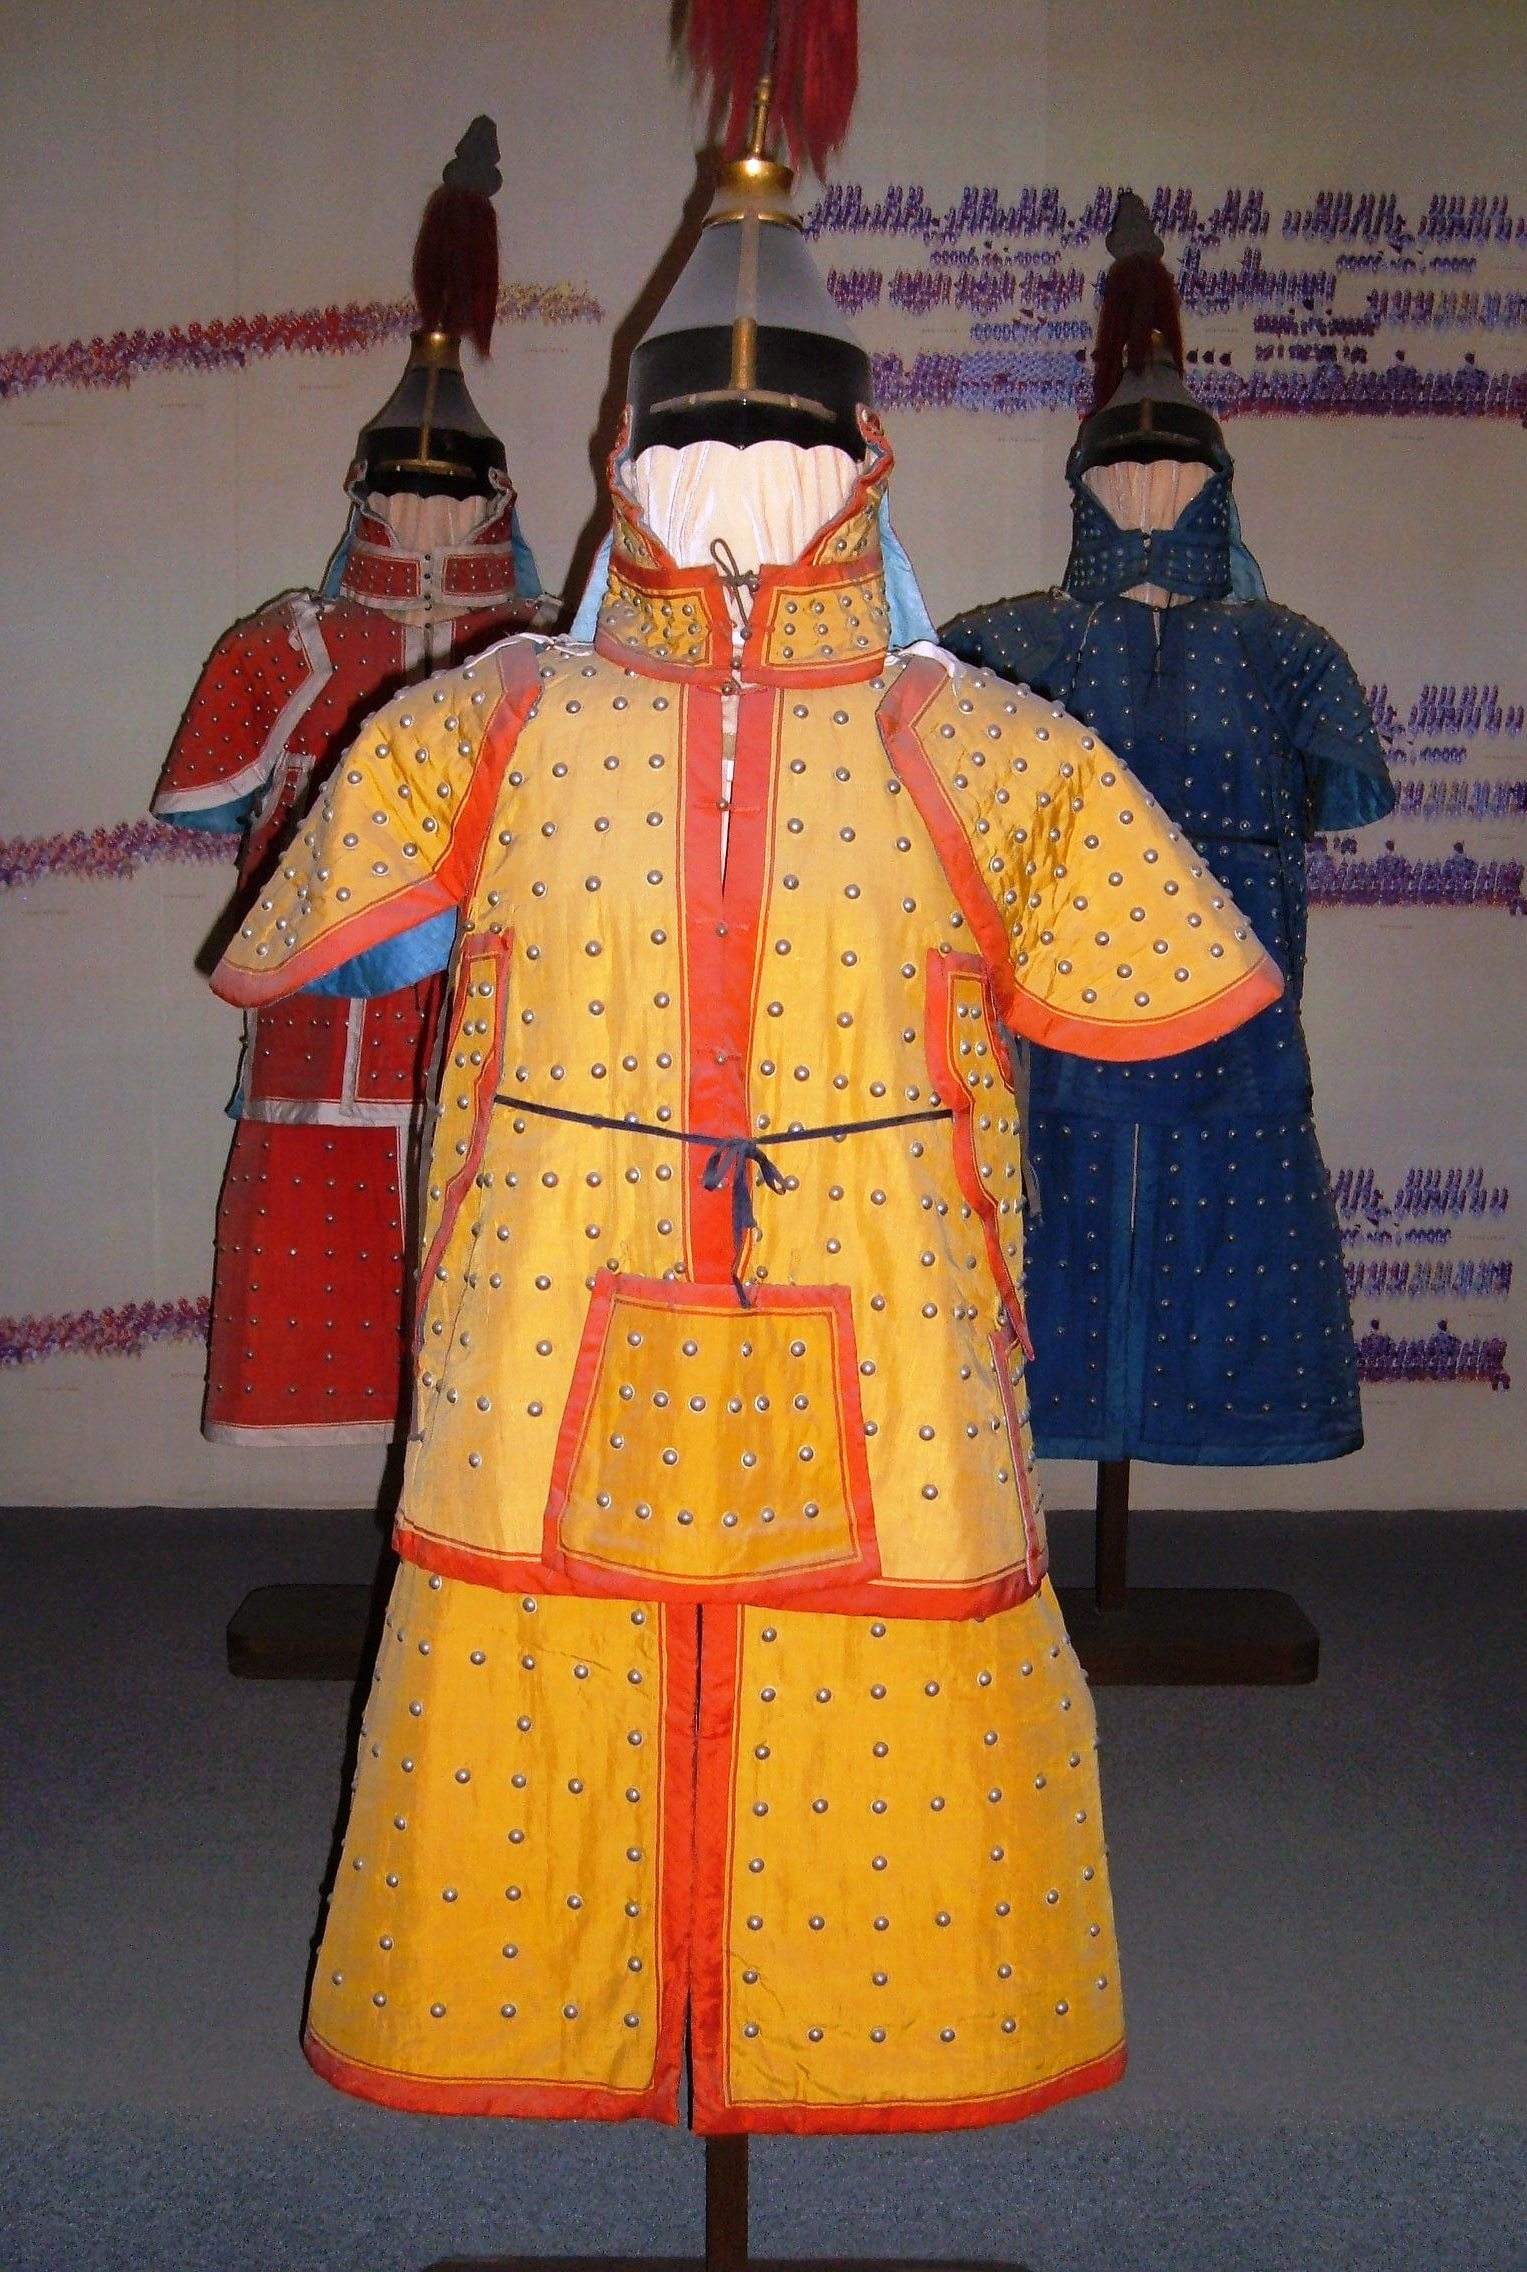 Qing_military_uniforms.JPG